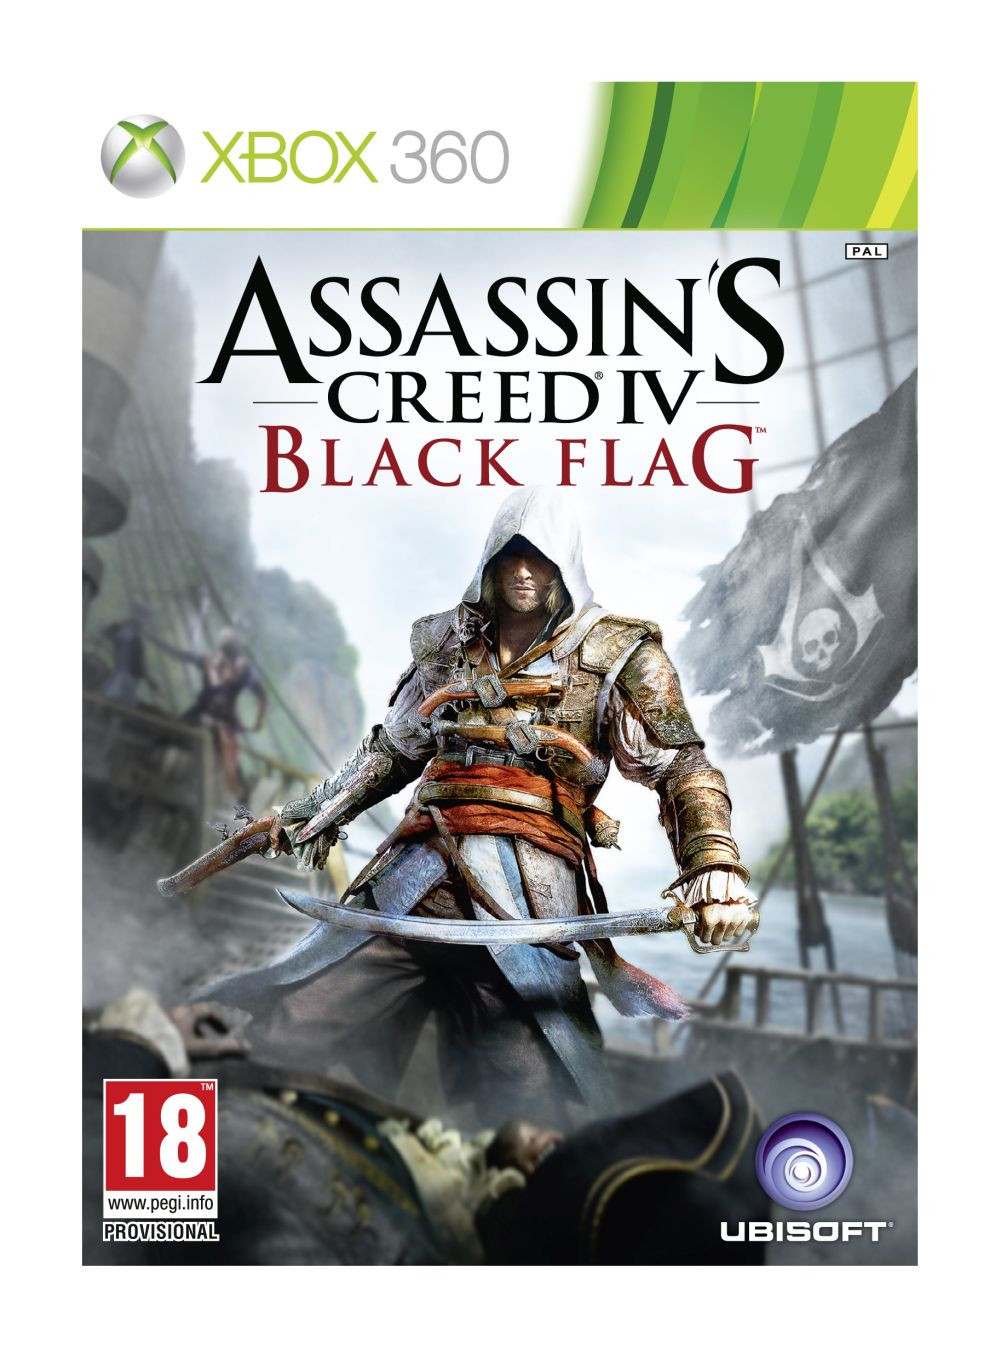 XBOX 360 Assassins Creed 4 Black Flag